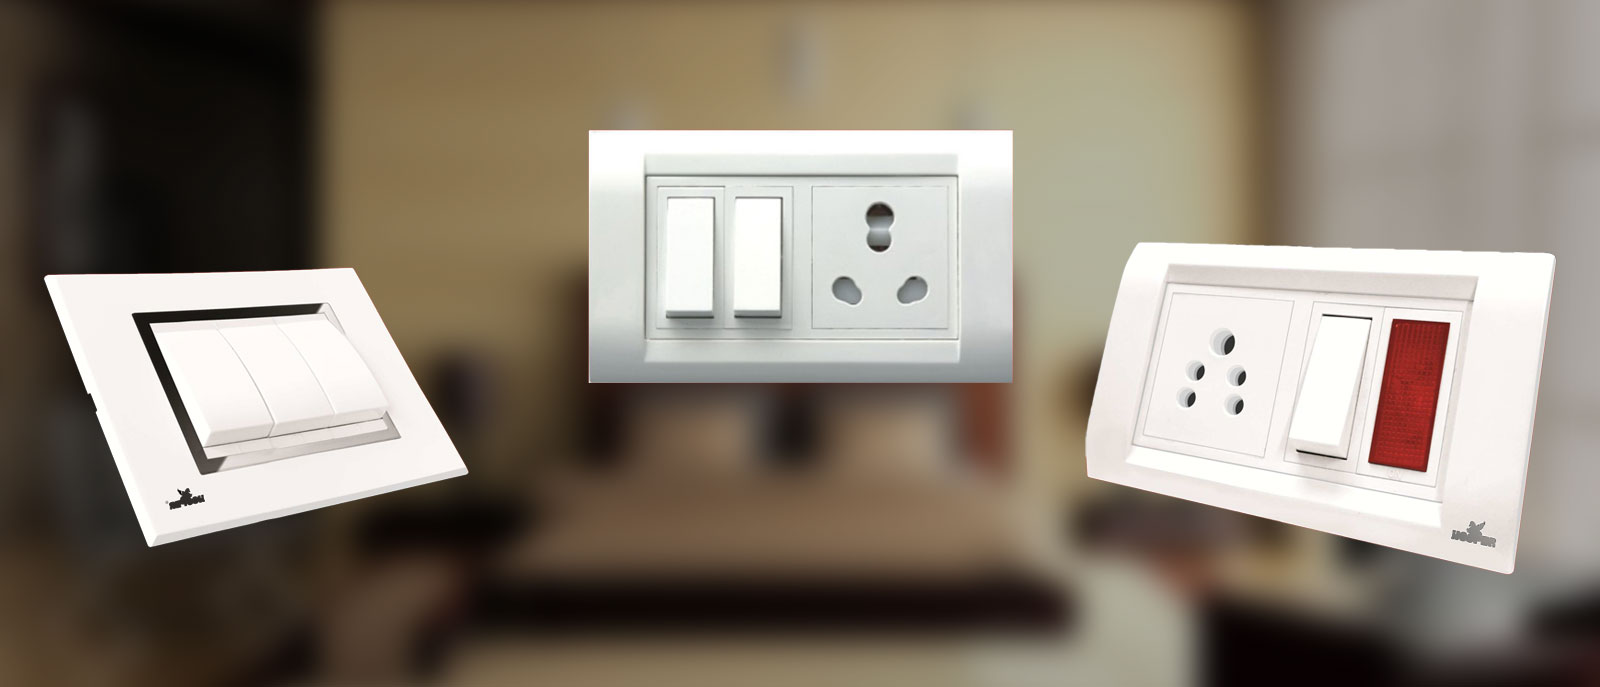 Electric Switches Manufacturer, Electrical Switches, Modular ...